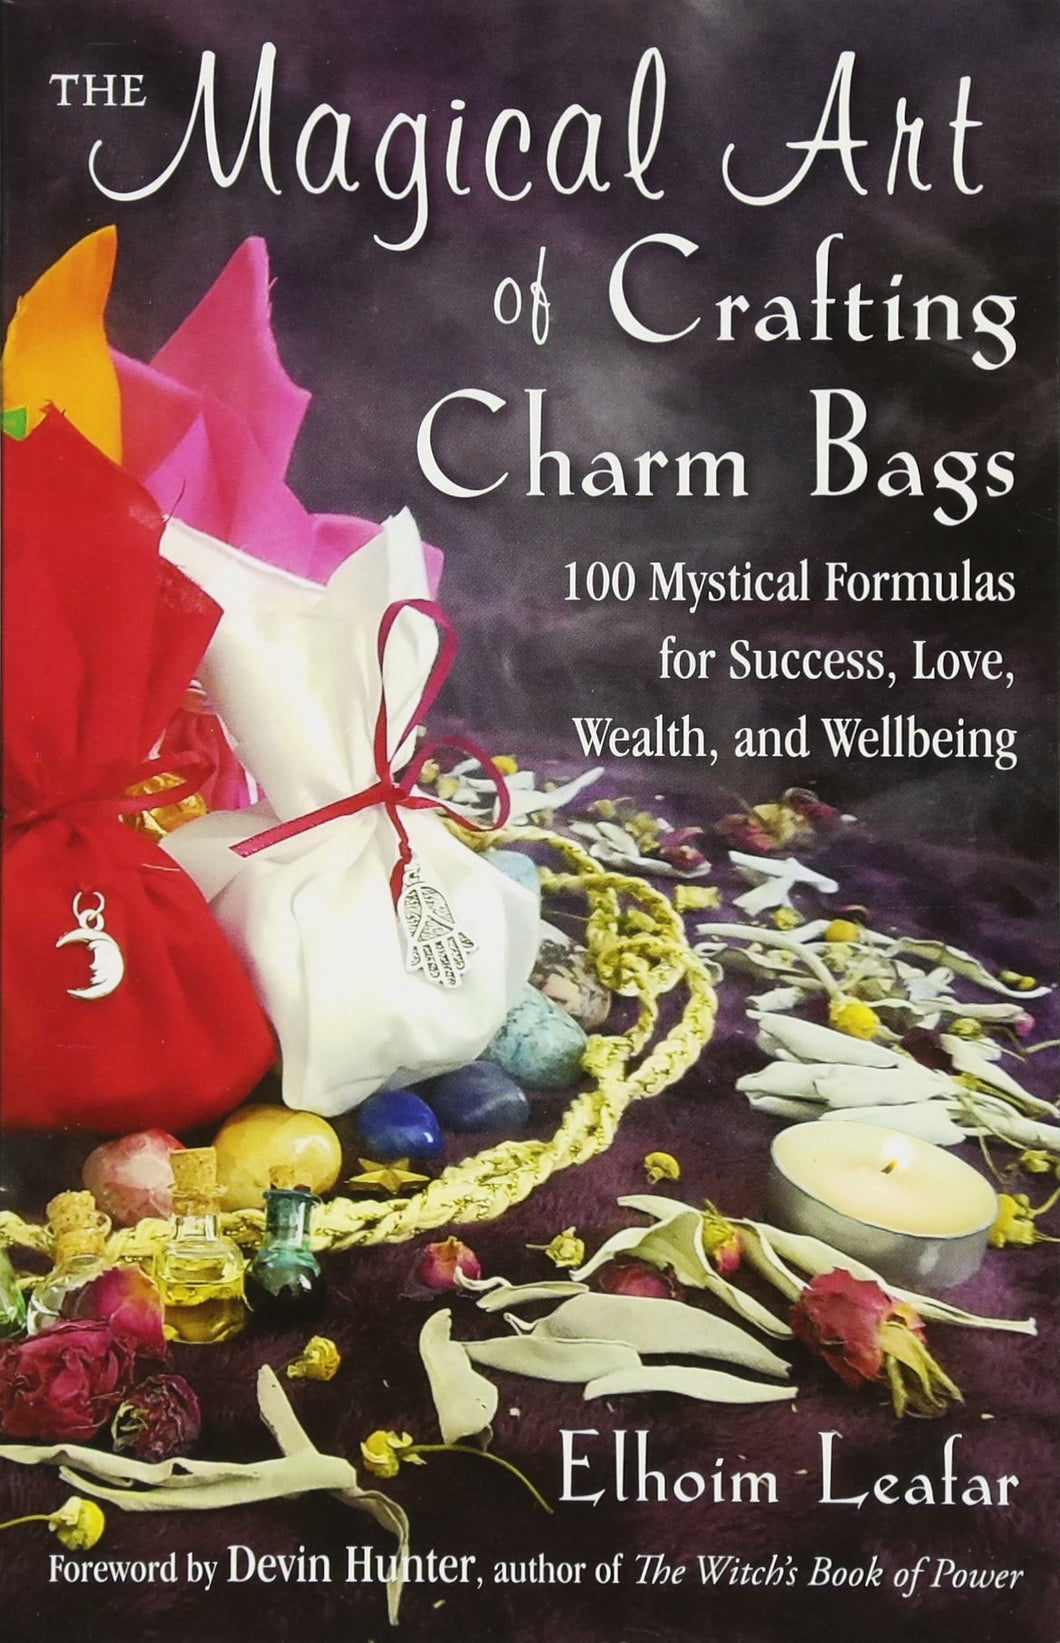 The Magical Art of Crafting Charm Bags by Elhoim Leafar